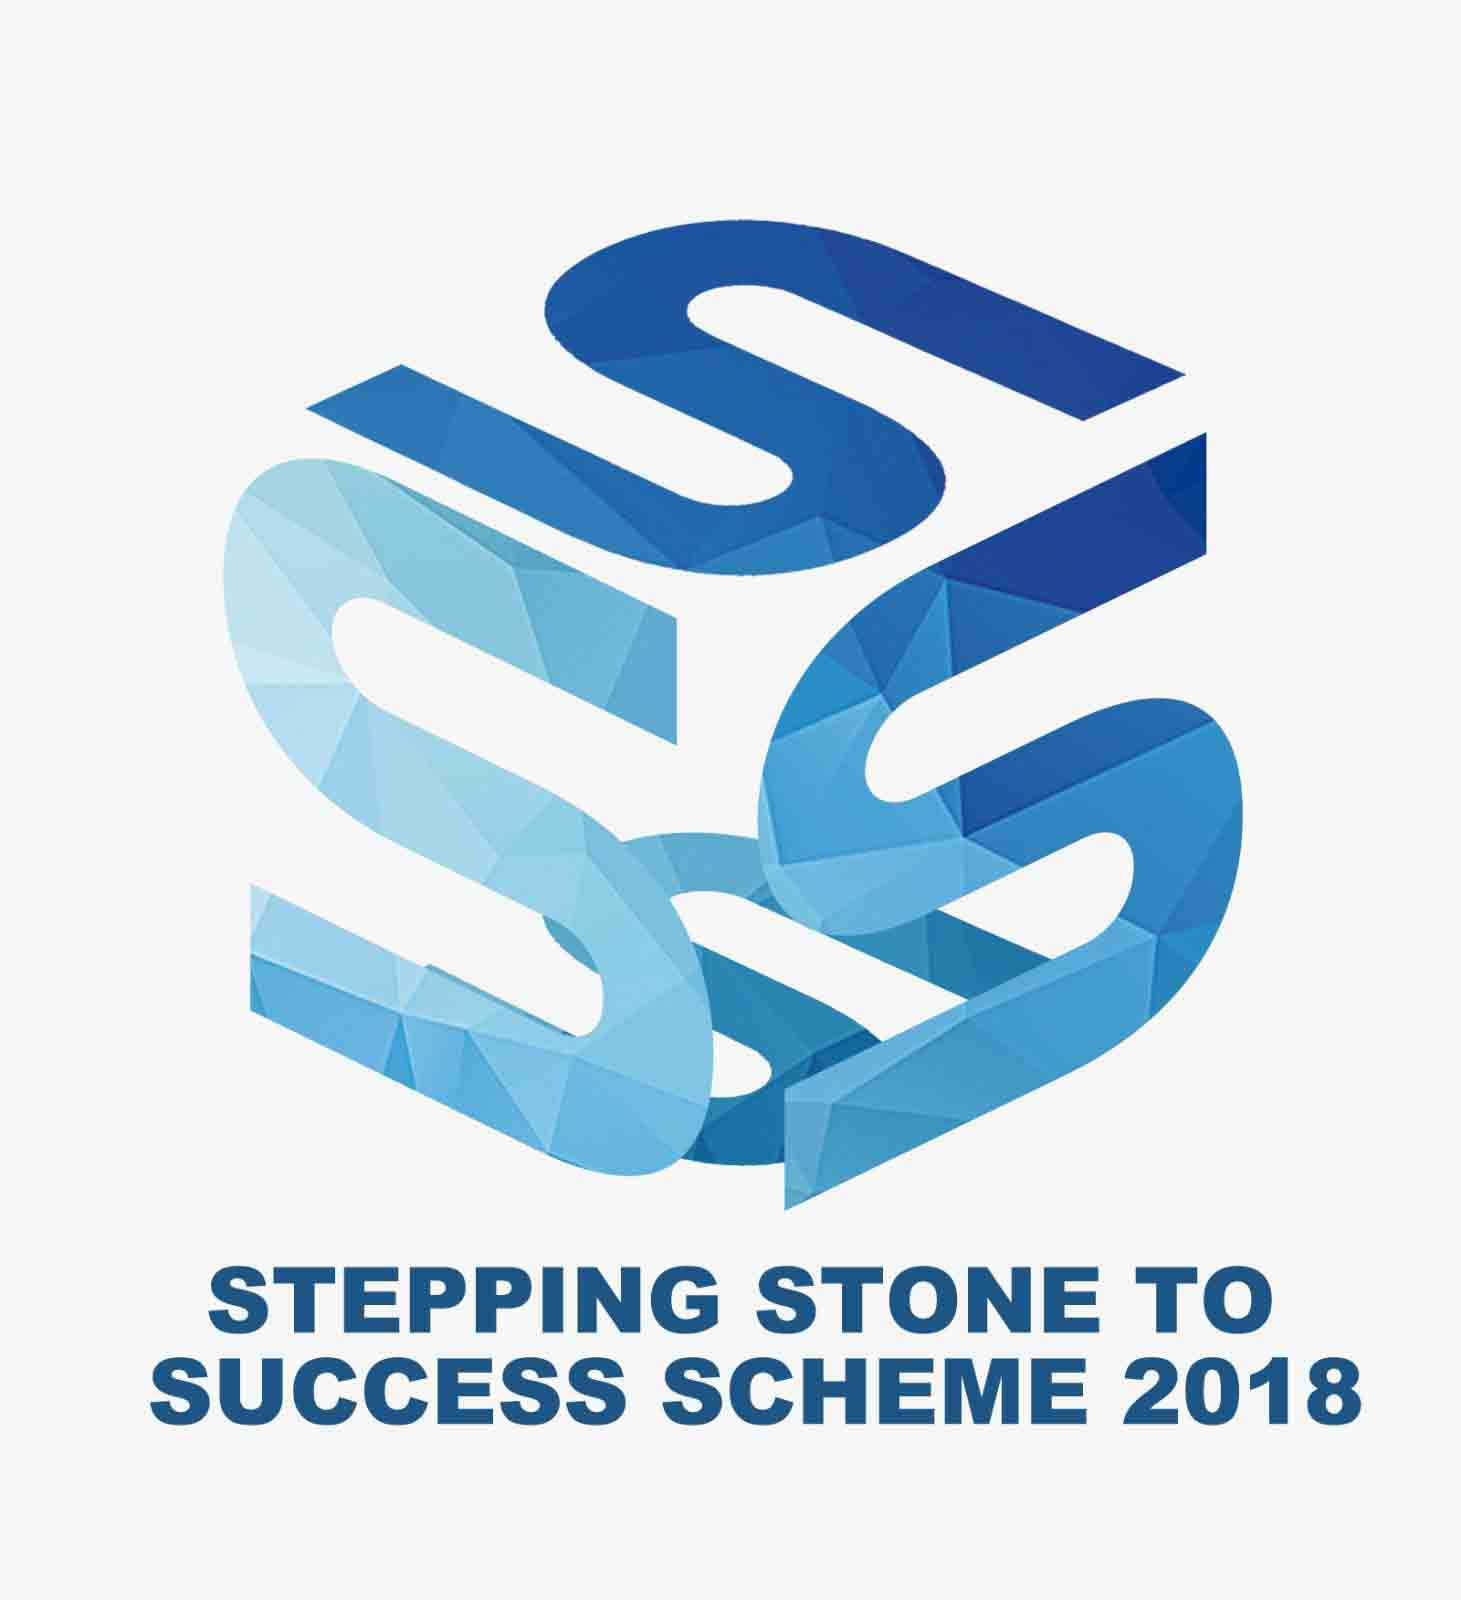 Stepping Stone to Success Scheme 2018